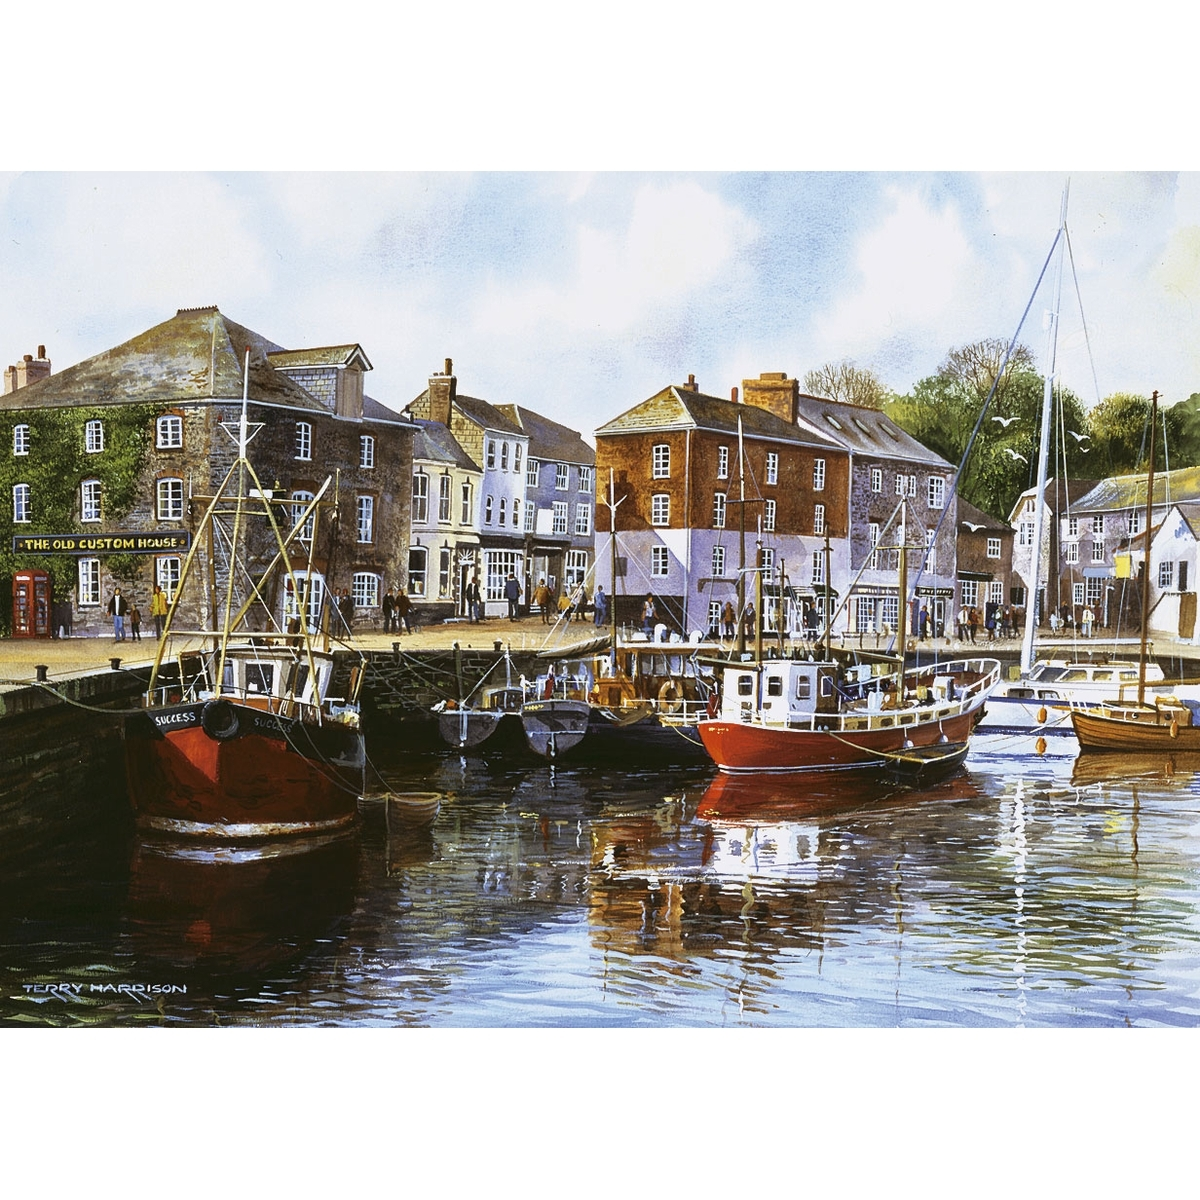 PADSTOW HARBOUR - 1000 PIECES